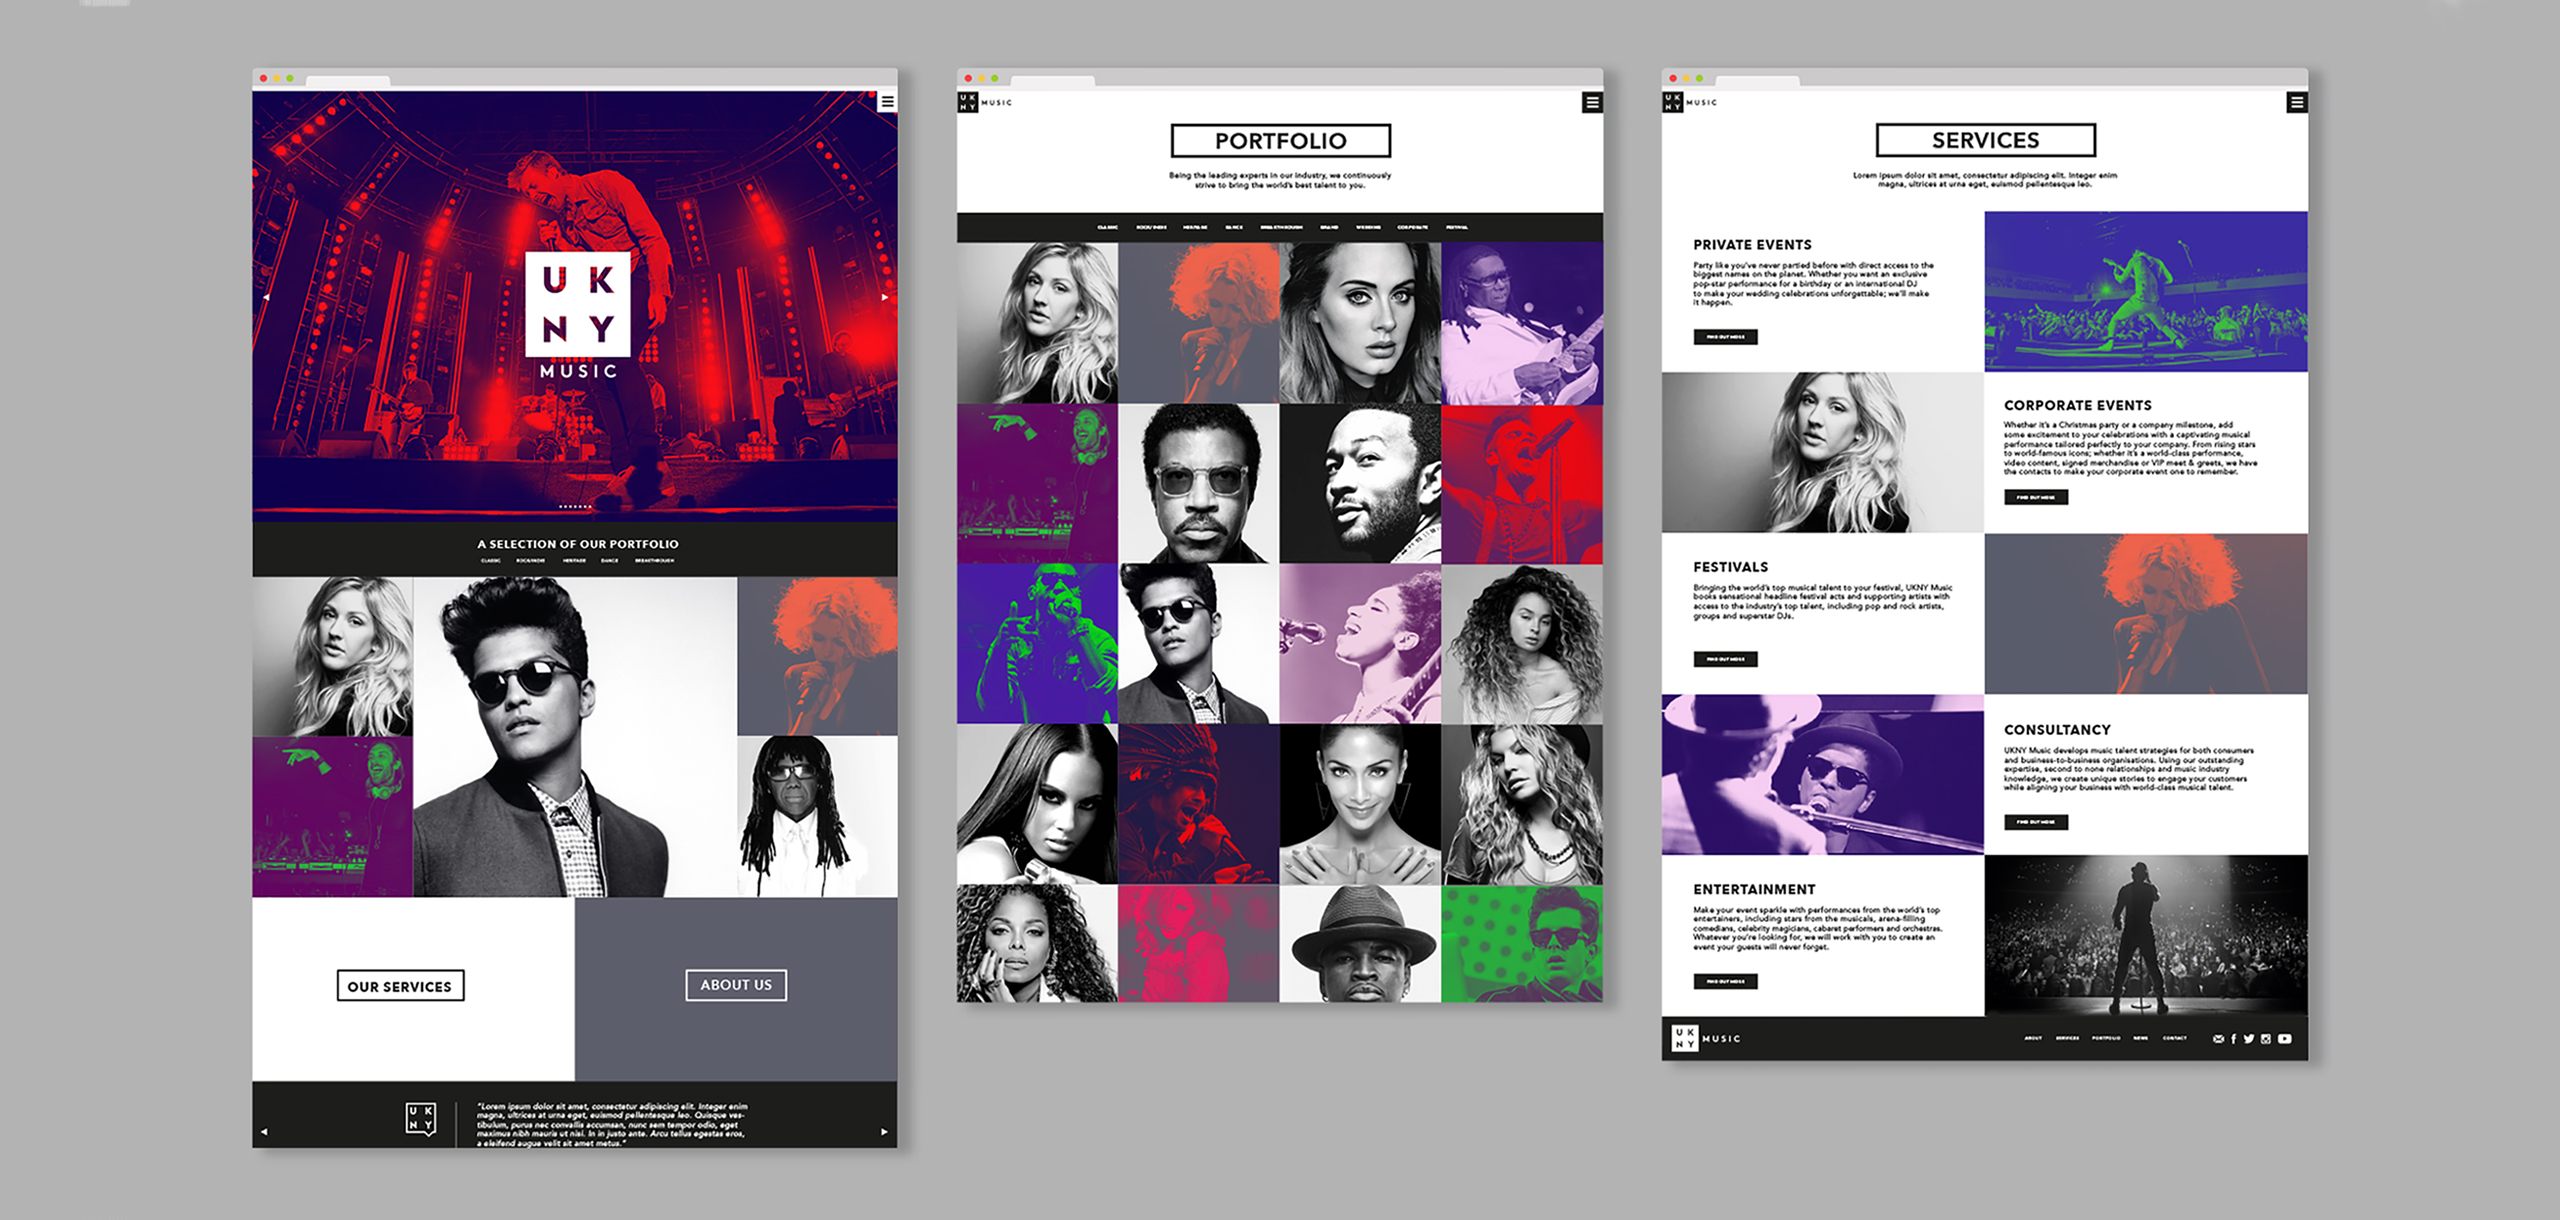 Website design for entertainment brand UKNY, designed by White Bear Studio